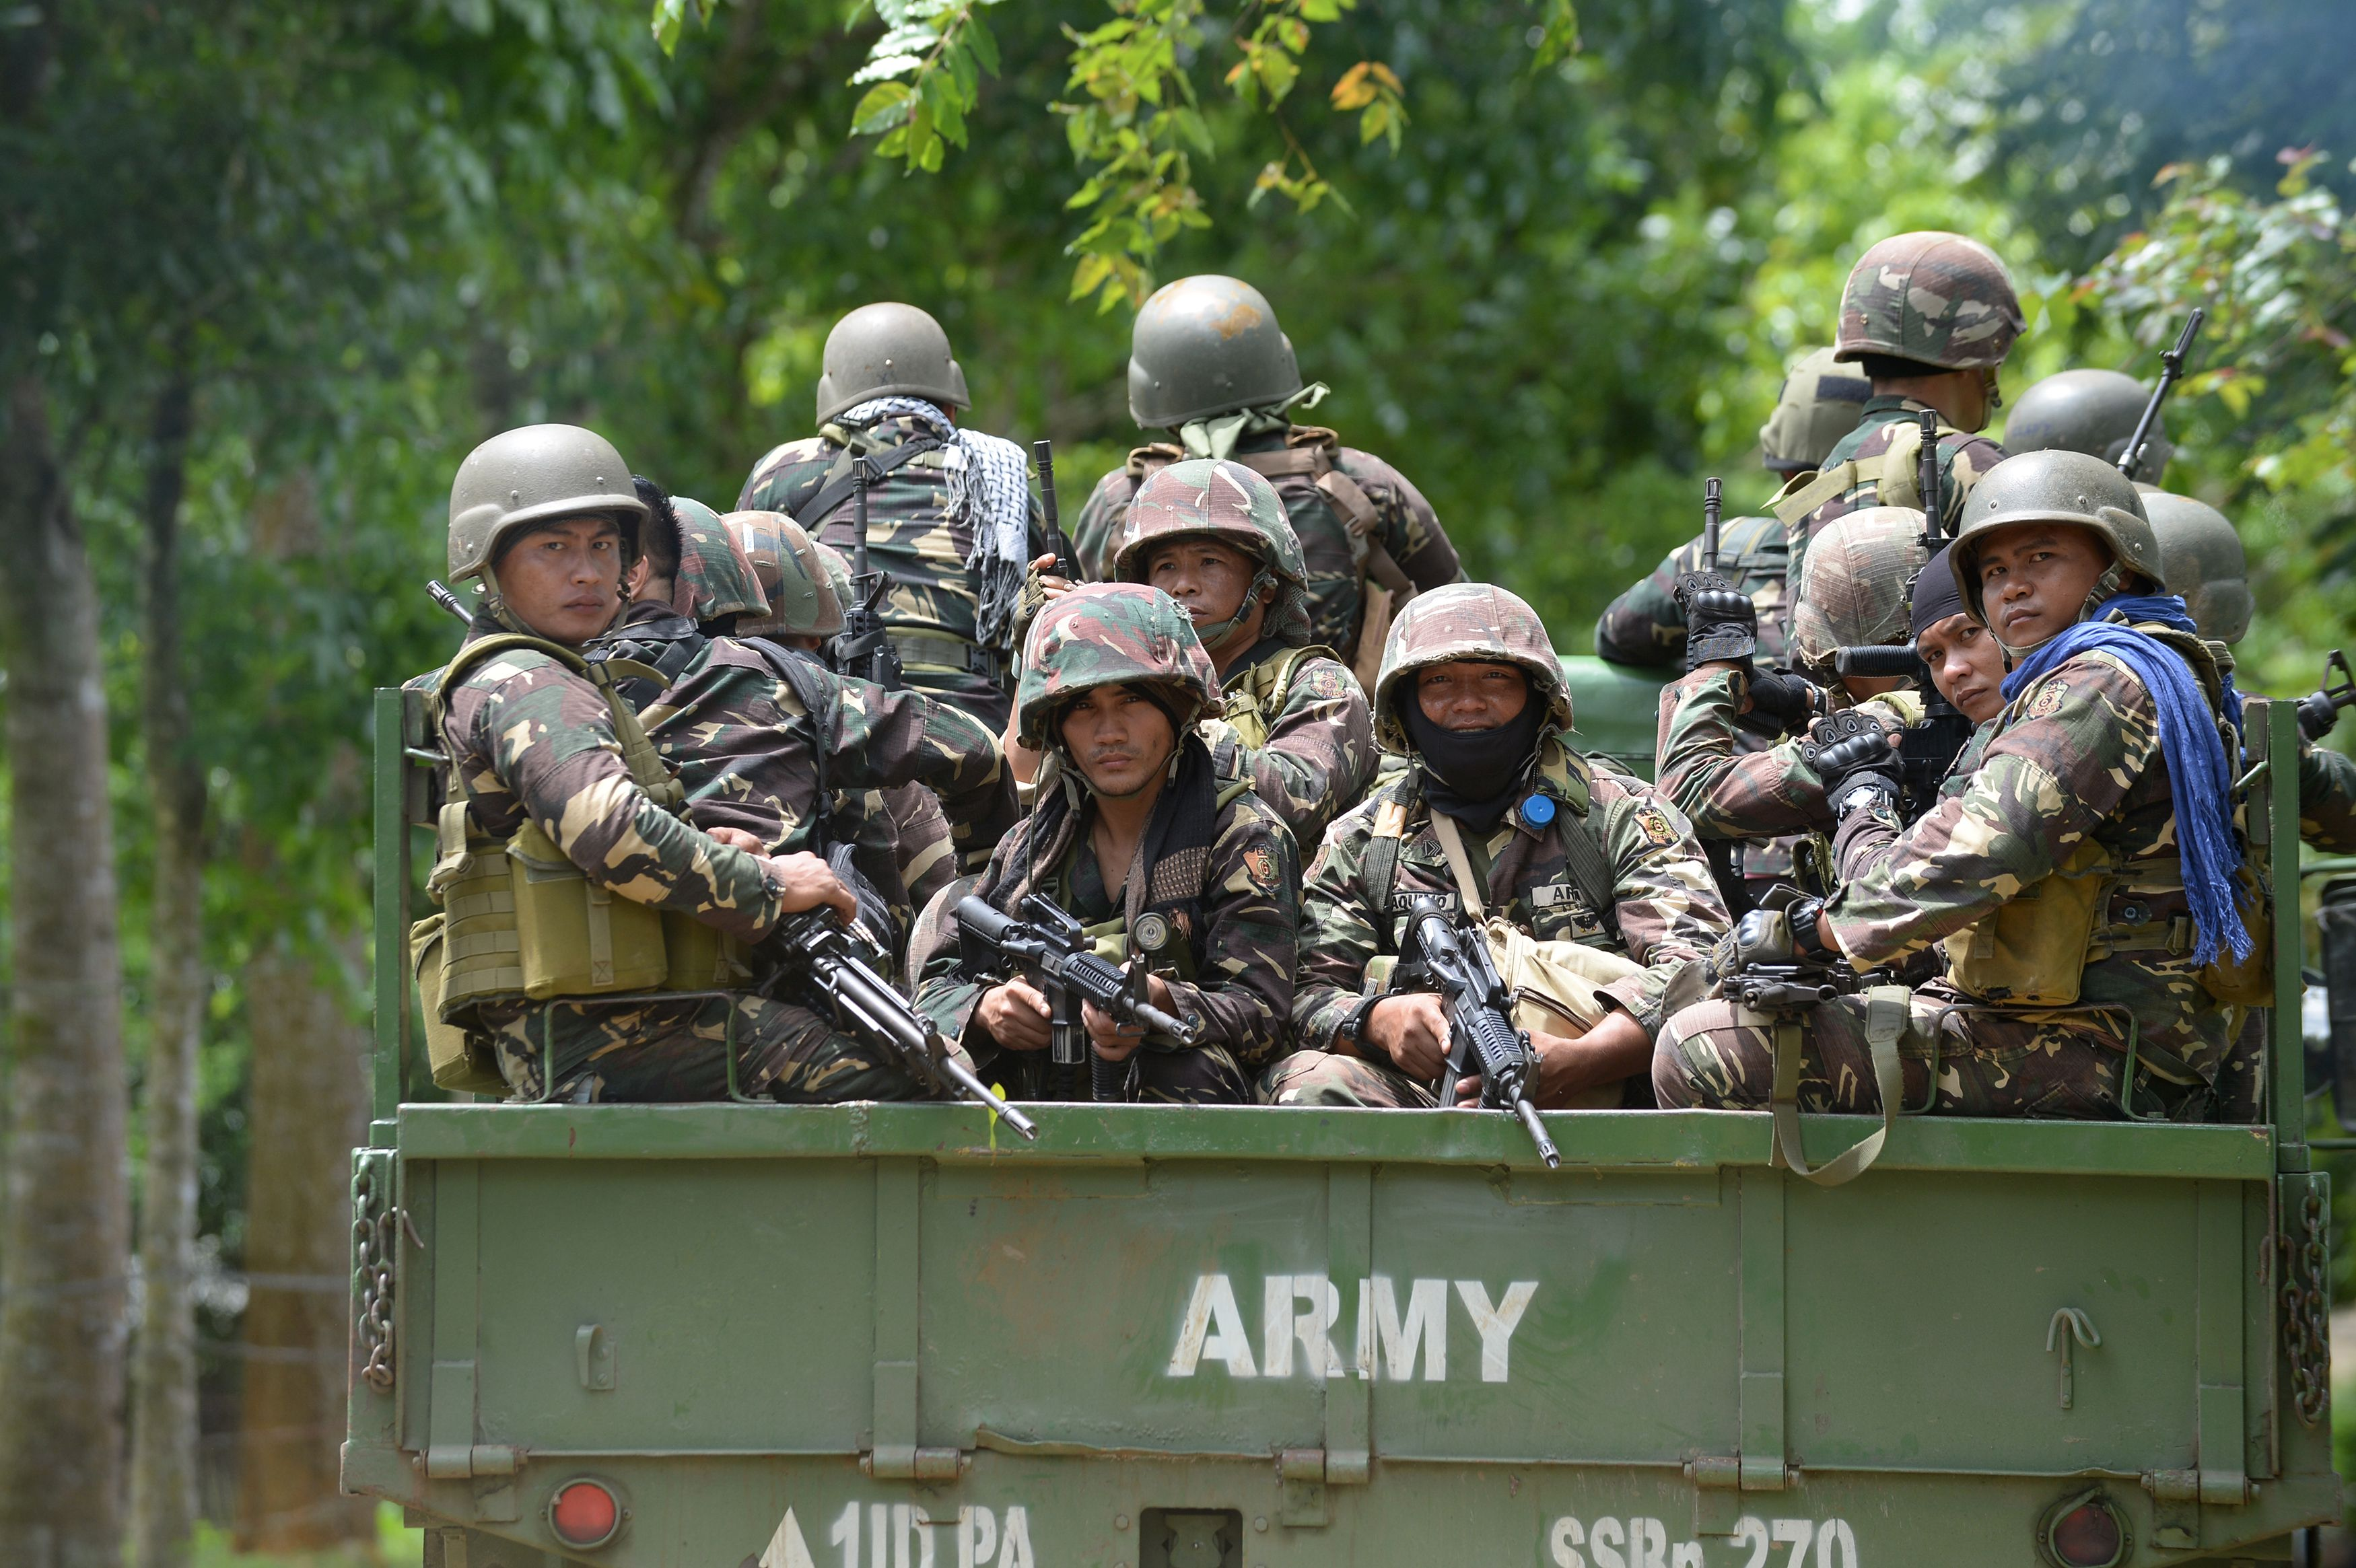 Philippine soldiers arrive at a military camp in Marawi on May 25, 2017.